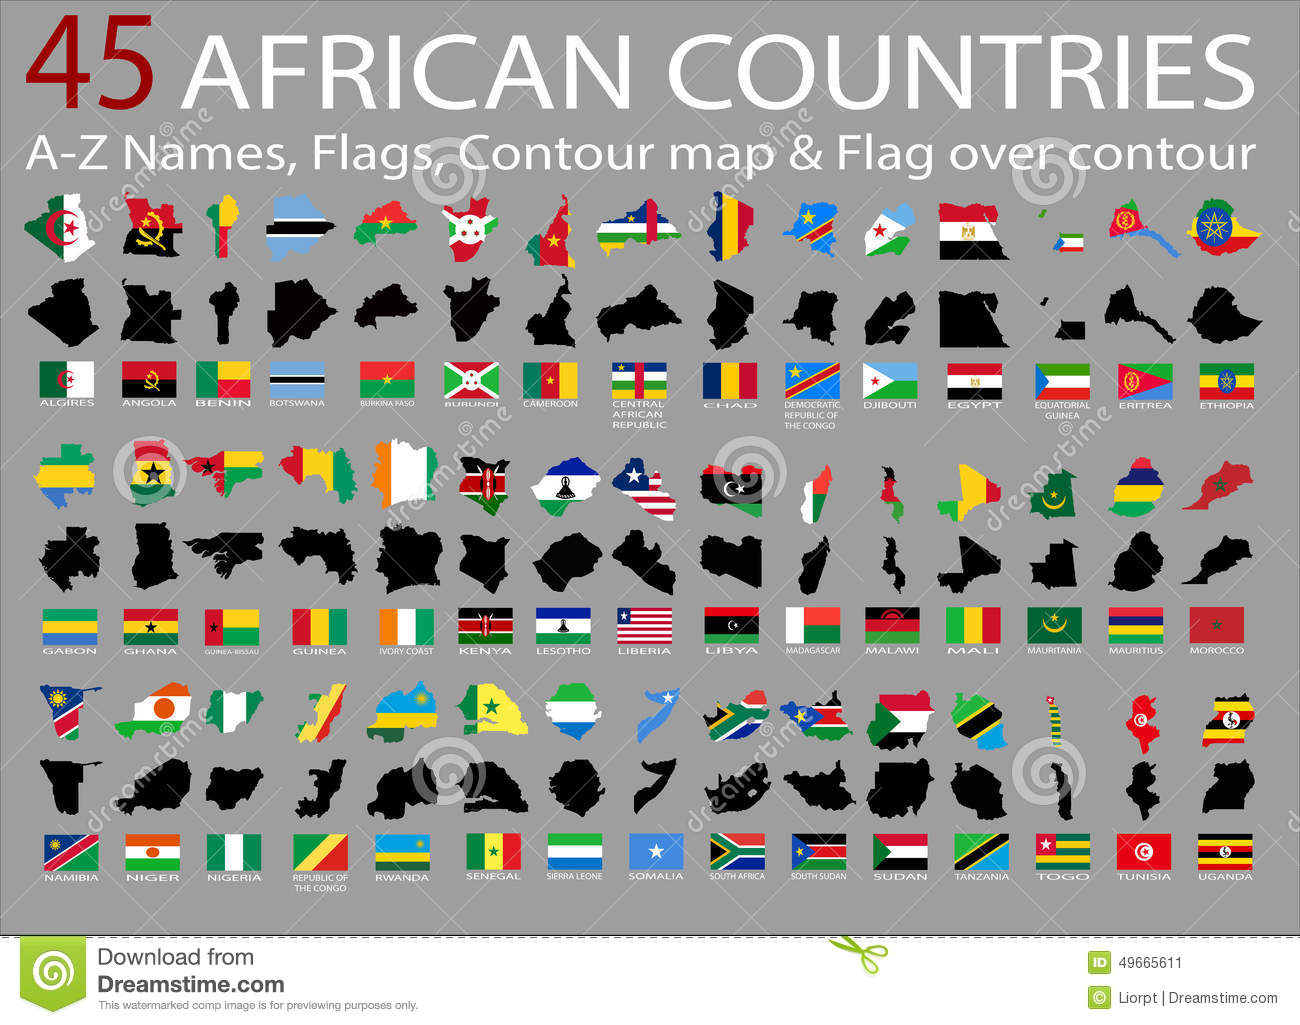 45 African Countries AZ NamesFlagsContour And National Flag Over